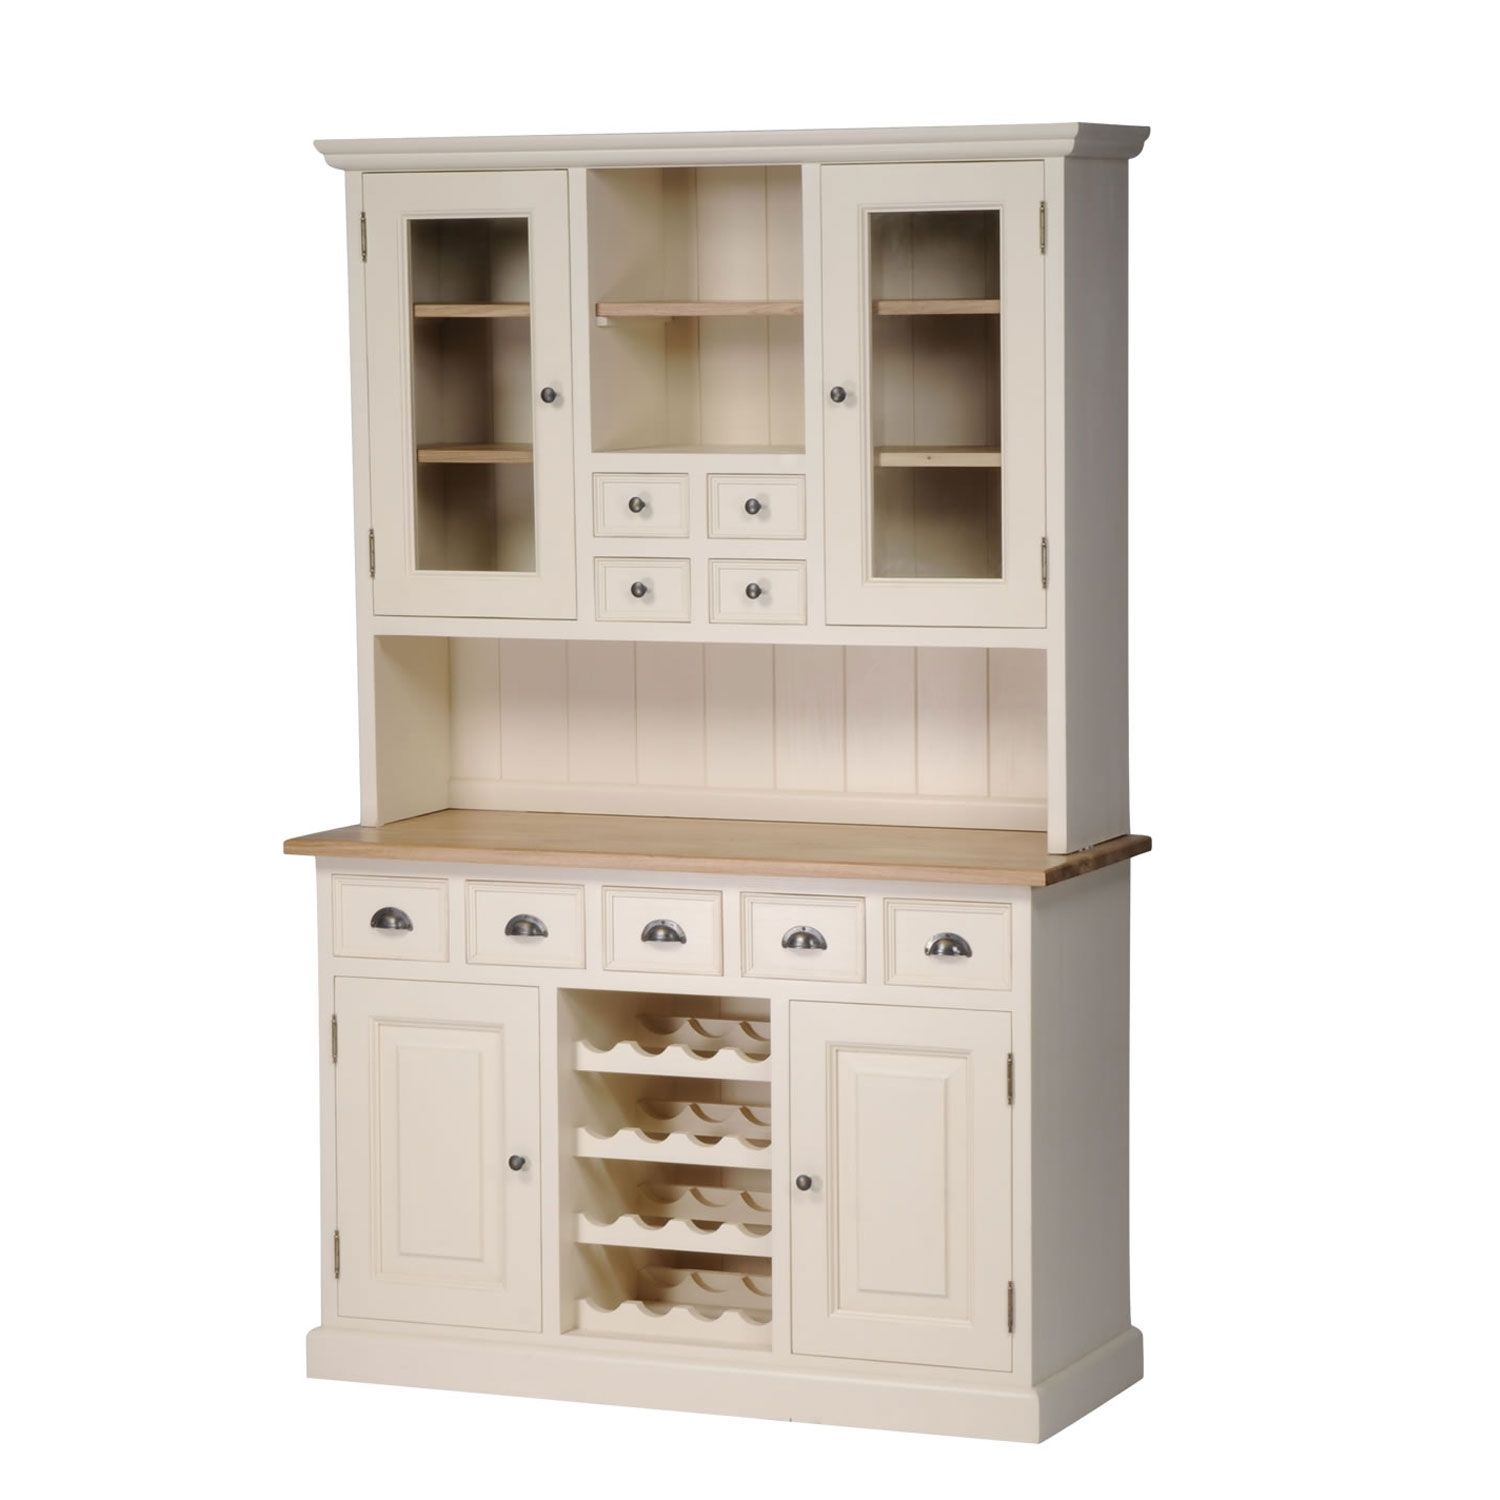 Mottisfont Painted Dresser With Built In Wine Rack Green Pine Wooden